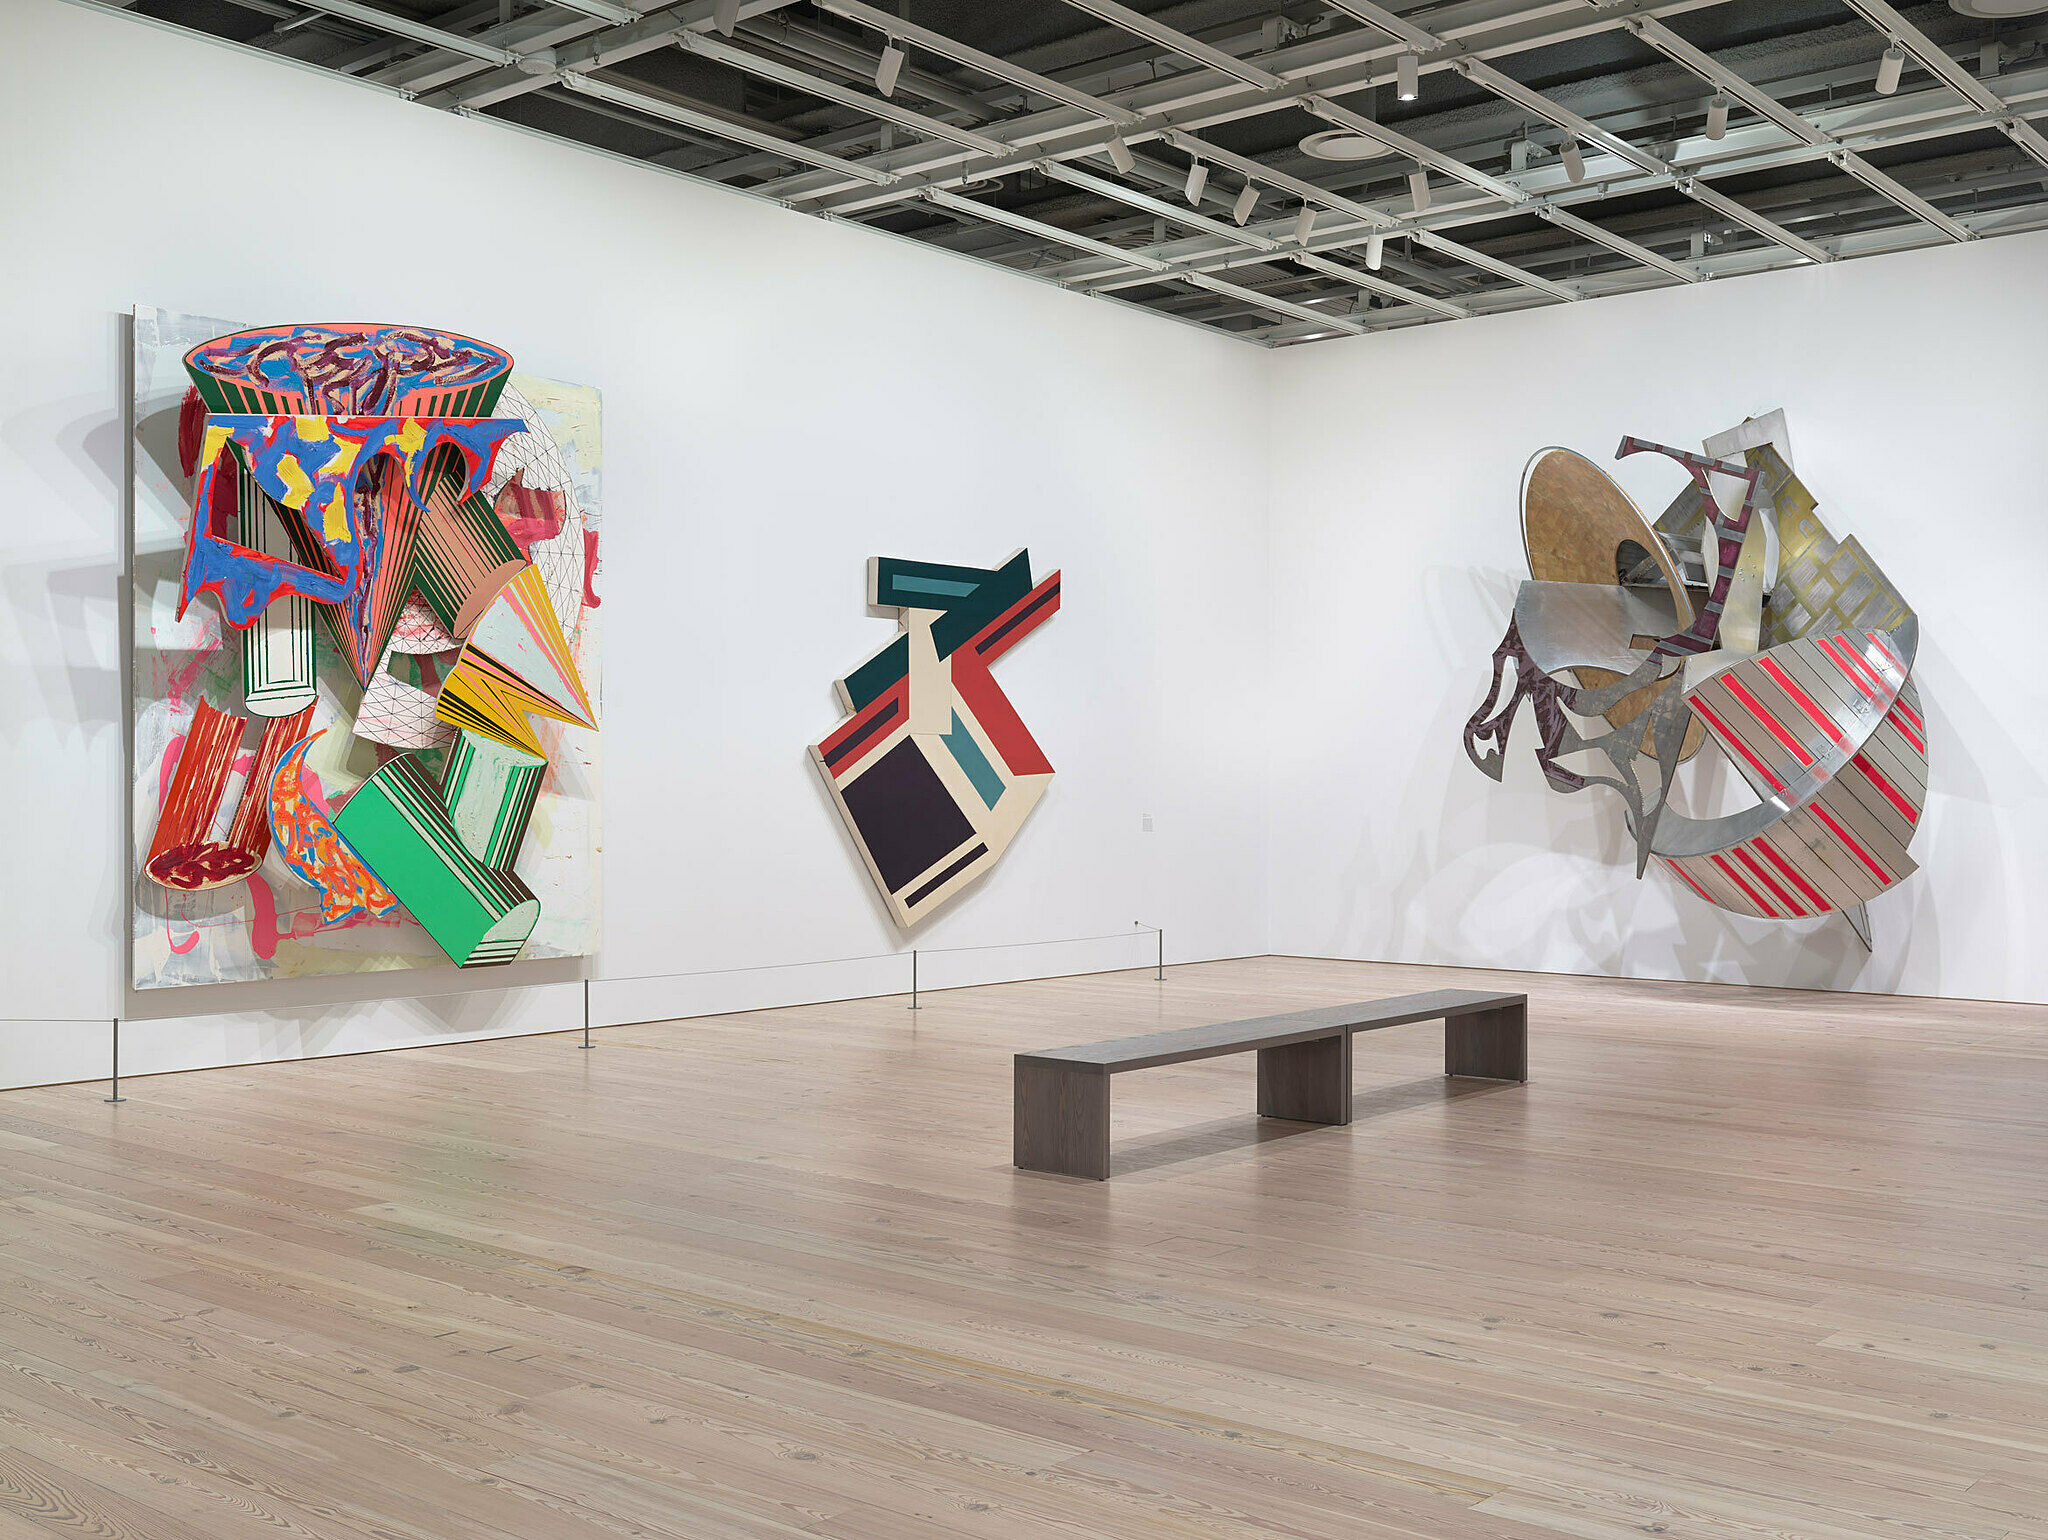 Three large abstract paintings line the walls of the exhibit.